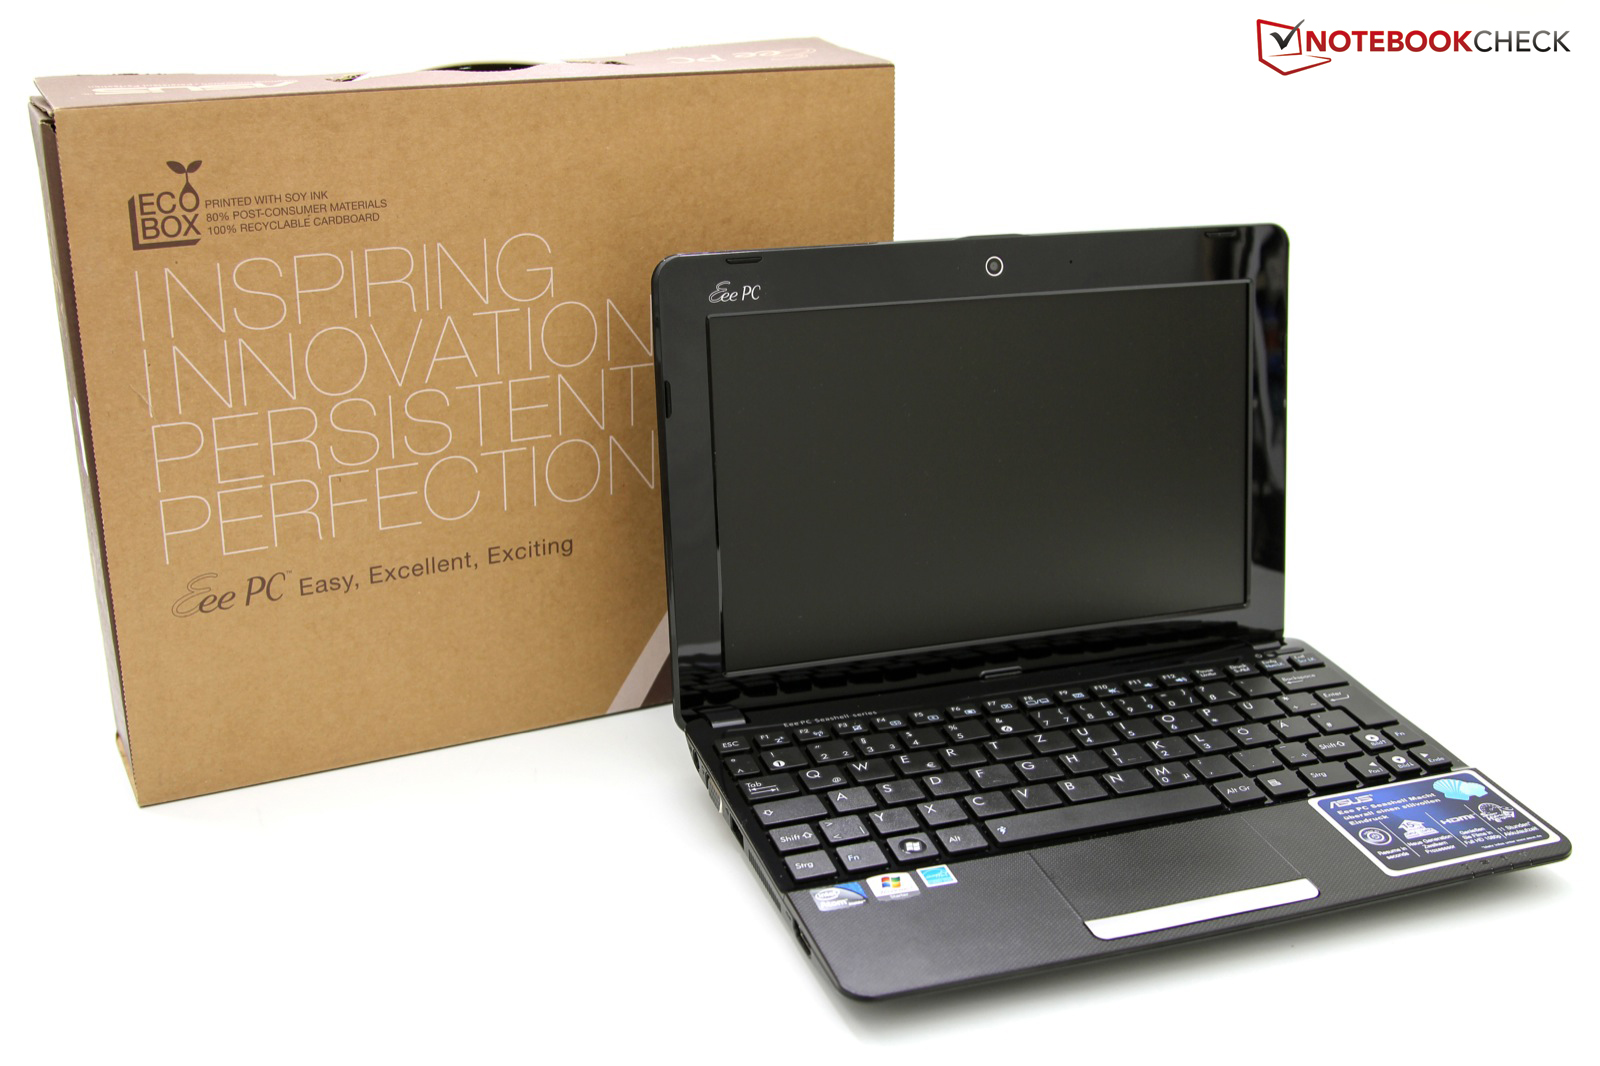 ASUS EEE PC 904HA CAMERA DESCARGAR DRIVER